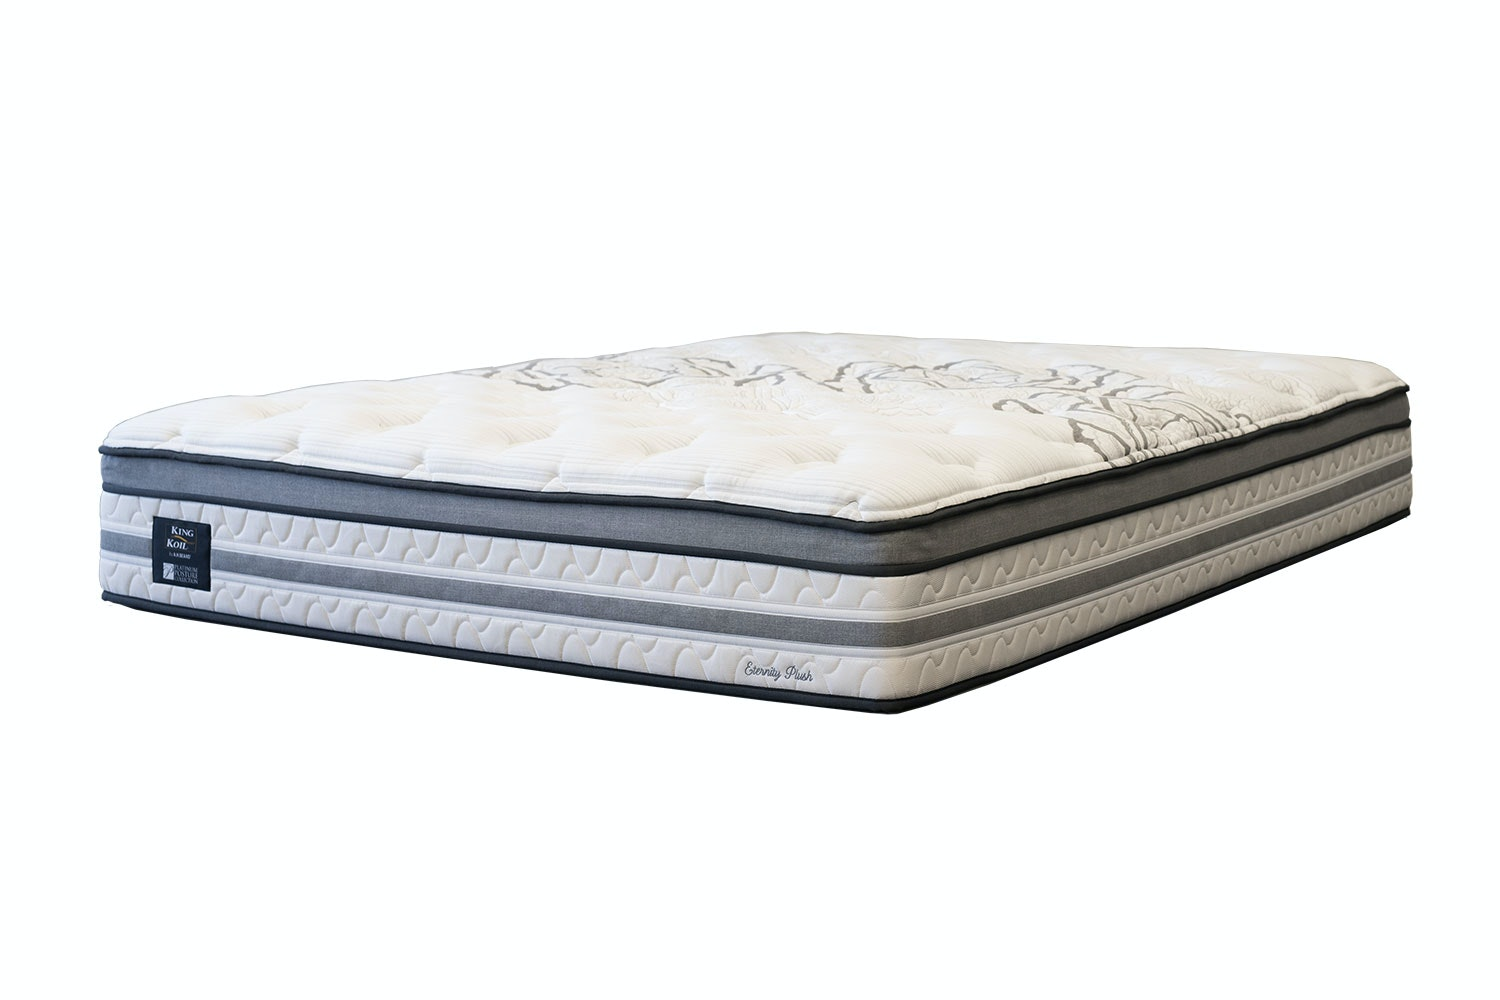 Eternity Plush Super King Mattress by King Koil